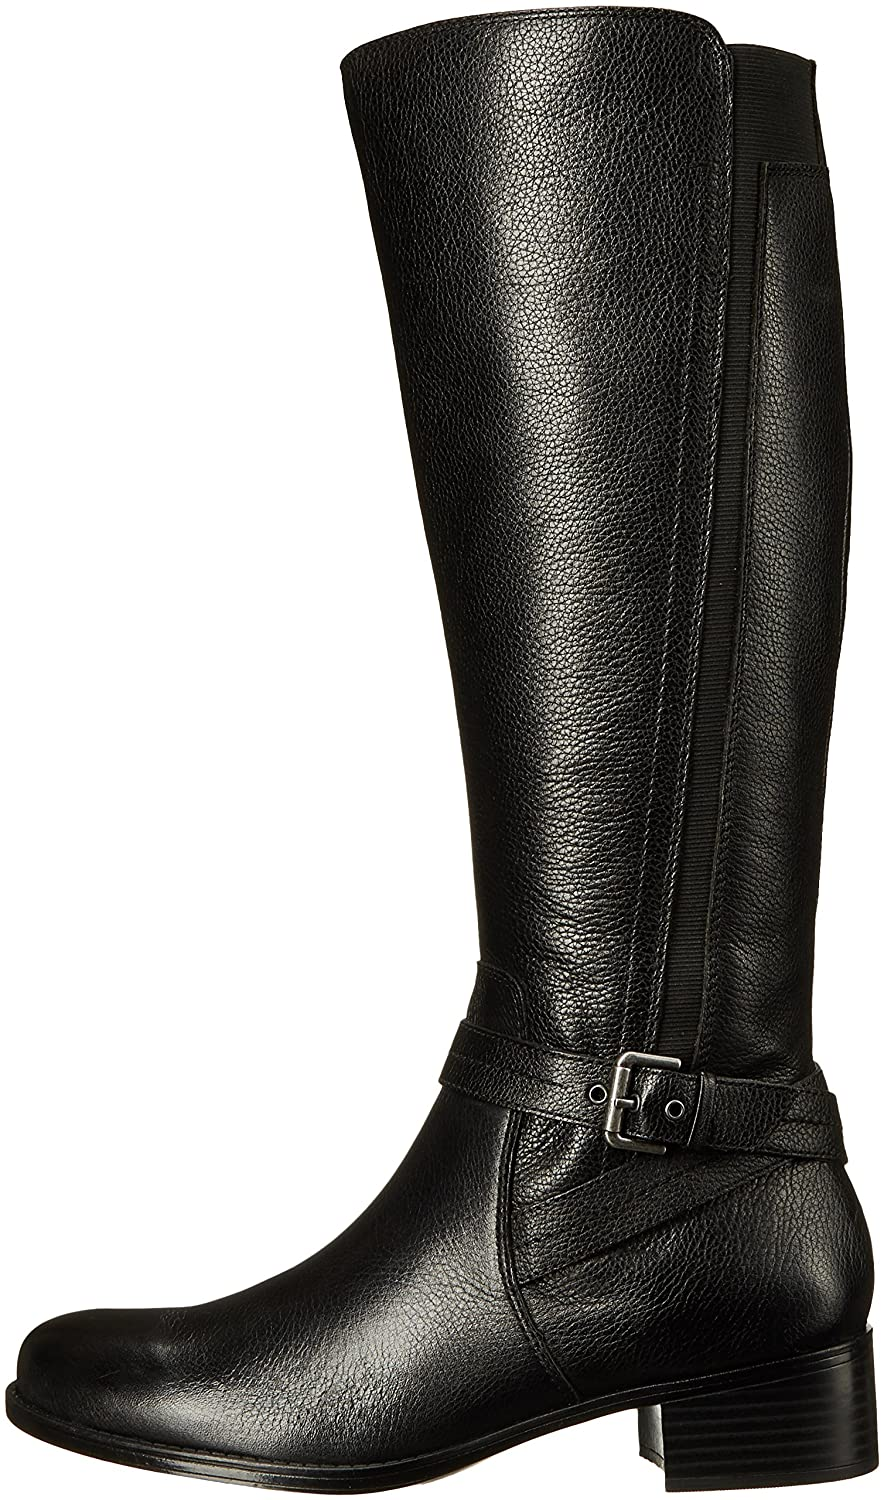 Naturalizer Women's Wynnie Riding Boot B01BUH8EMC 6.5 B(M) US|Black